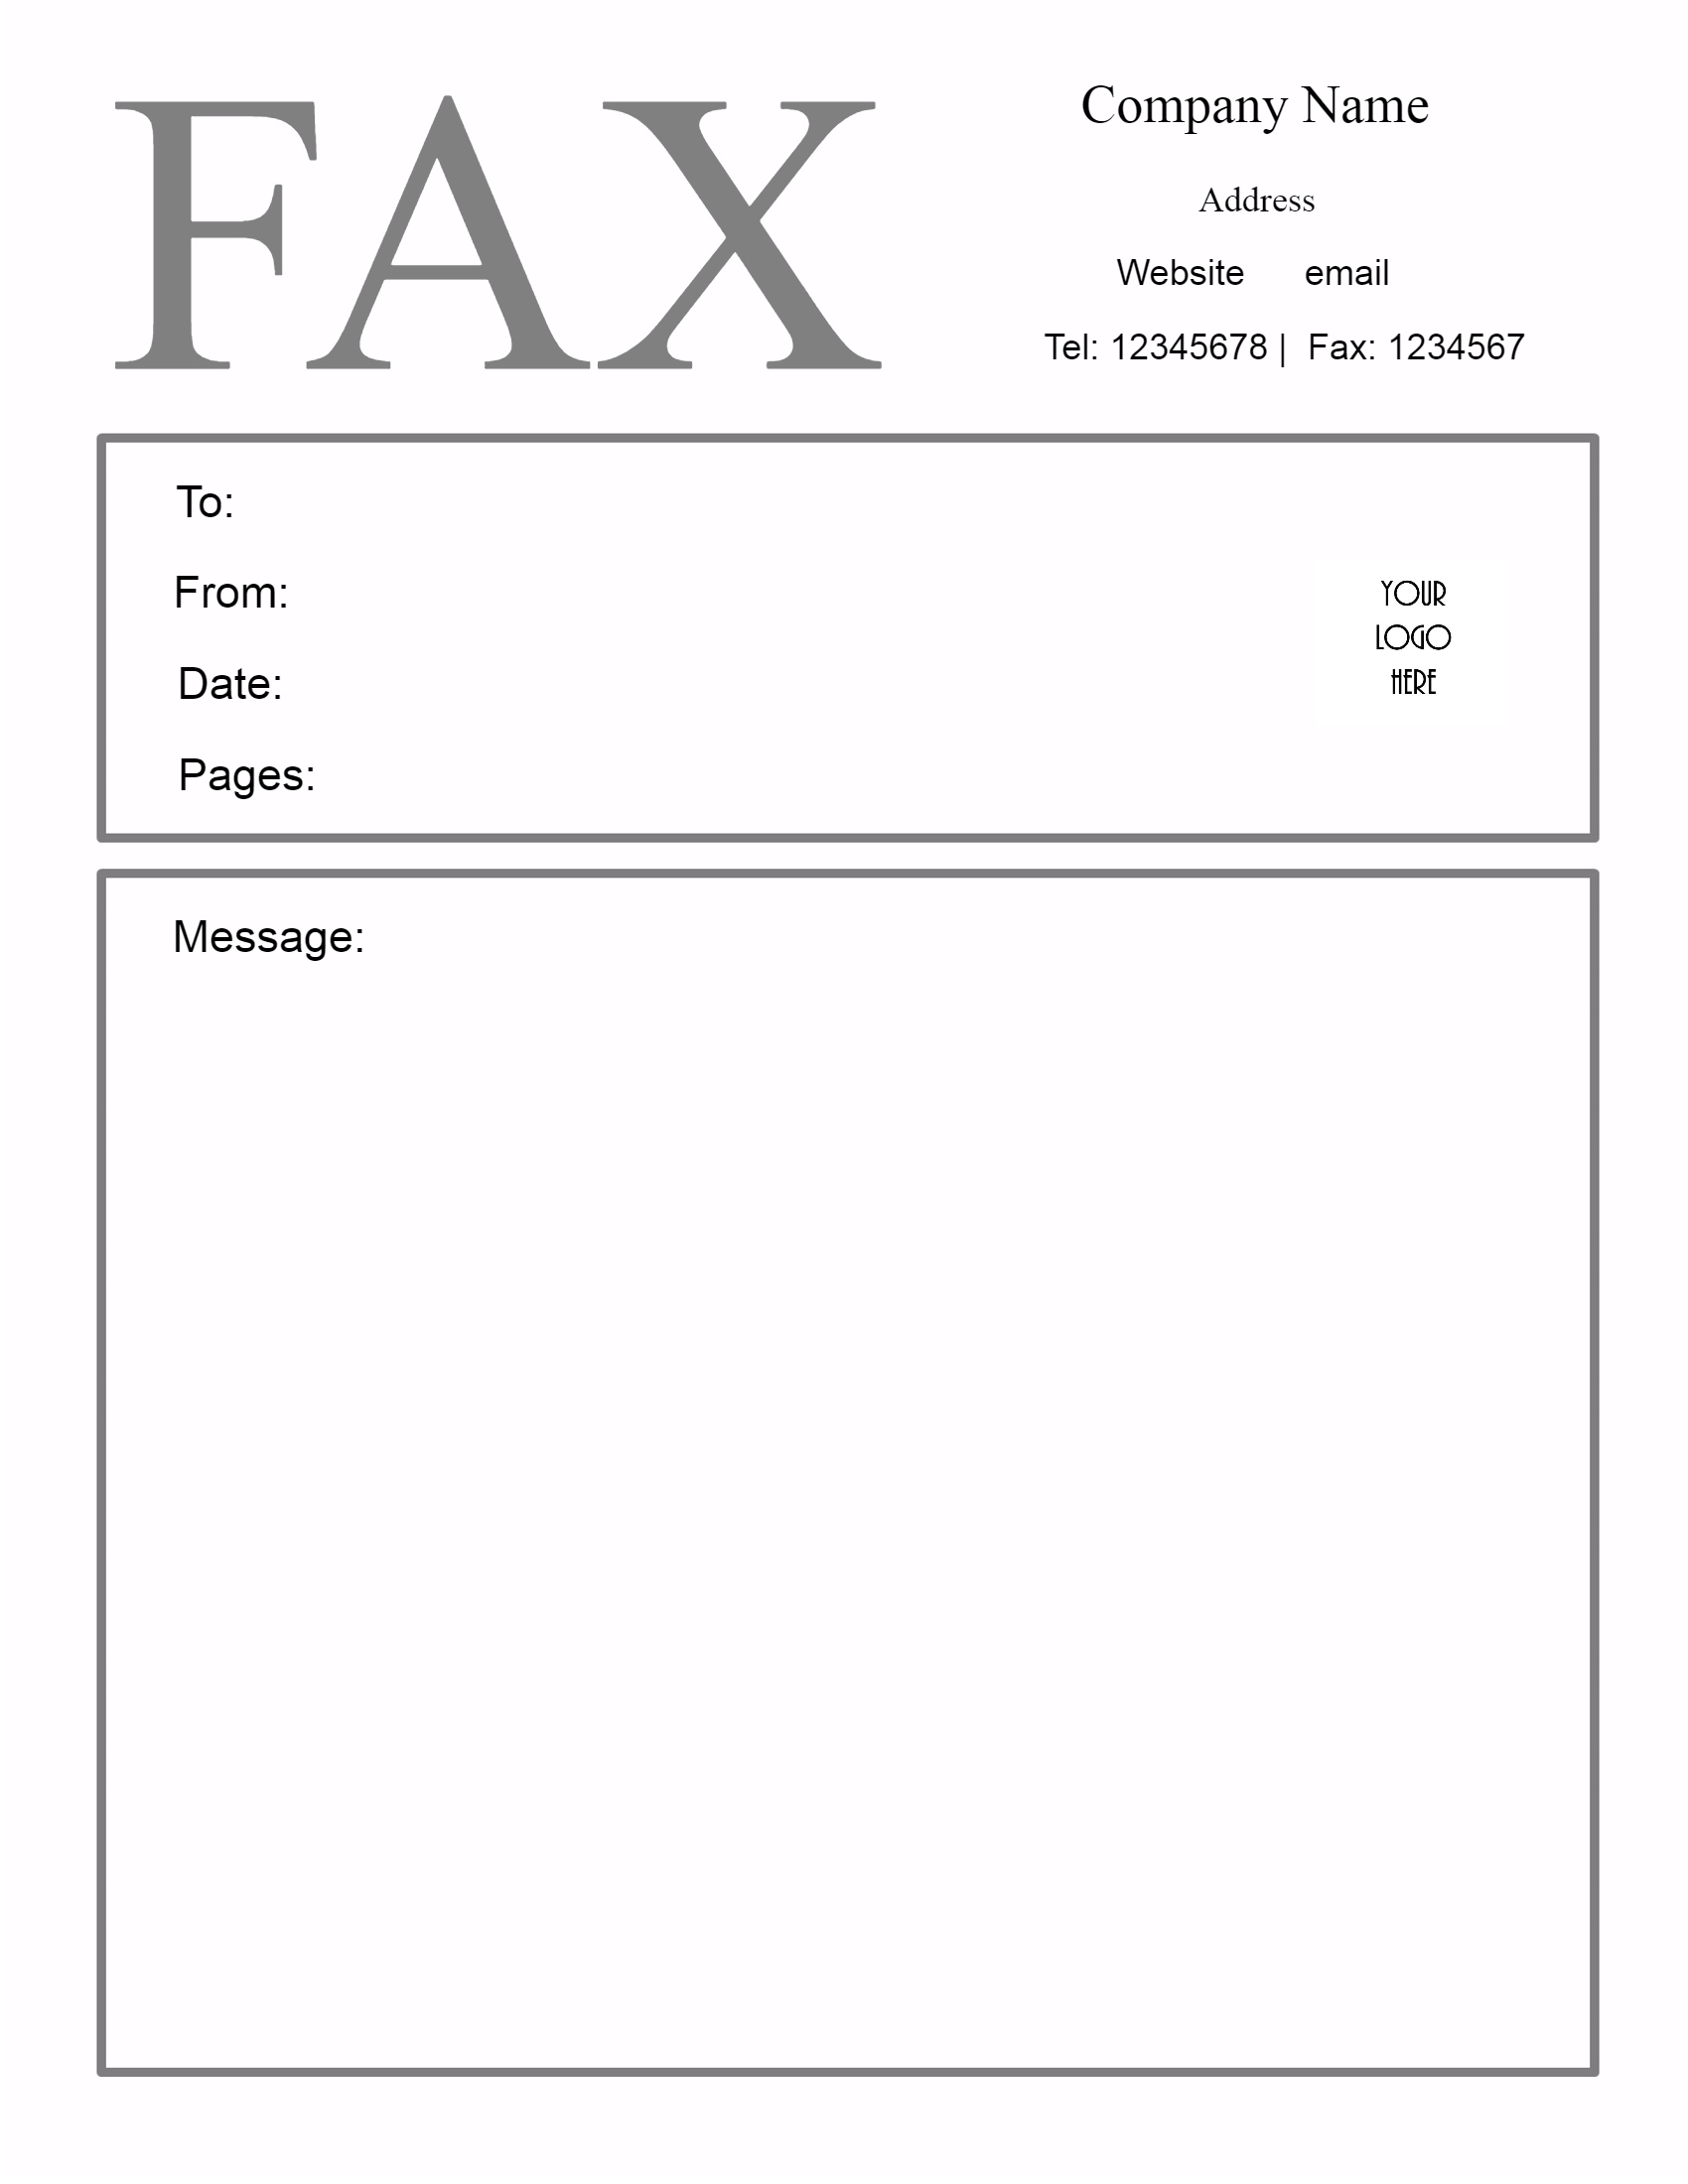 Fax Cover Sheet Printable Free Fax Cover Sheet Printable